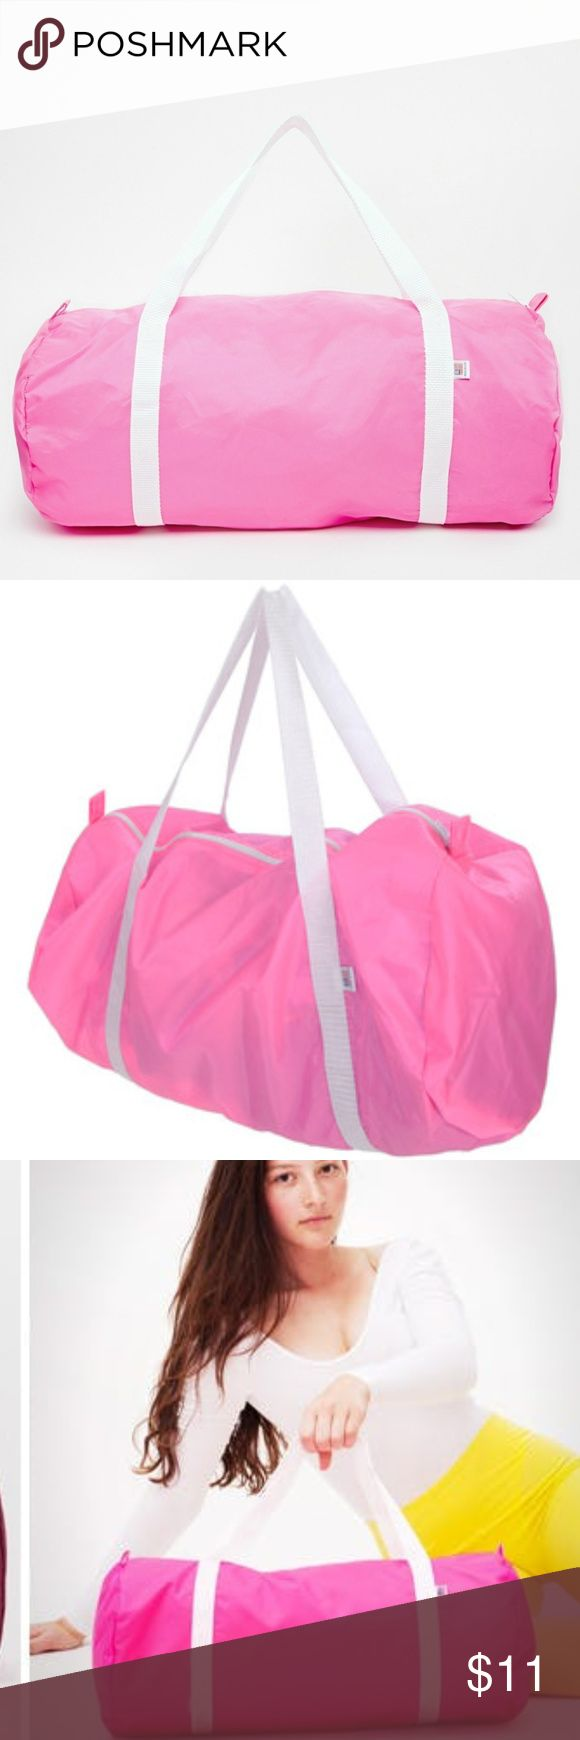 """American Apparel Nylon Gym Bag Original made in USA American Apparel nylon gym bag in pink. Never used, although it seems to have gotten a few marks here and there as pictured. The light gray marks seem to exist on a side and bottom. Apparently an imported version of this is being sold on the site again for $30 however this one is an original and I believe the original price used to be $24. Price reflects flaws!  Constructed of water-resistant 100% """"Nylon Pack Cloth"""" and measures 20"""" x 9""""…"""